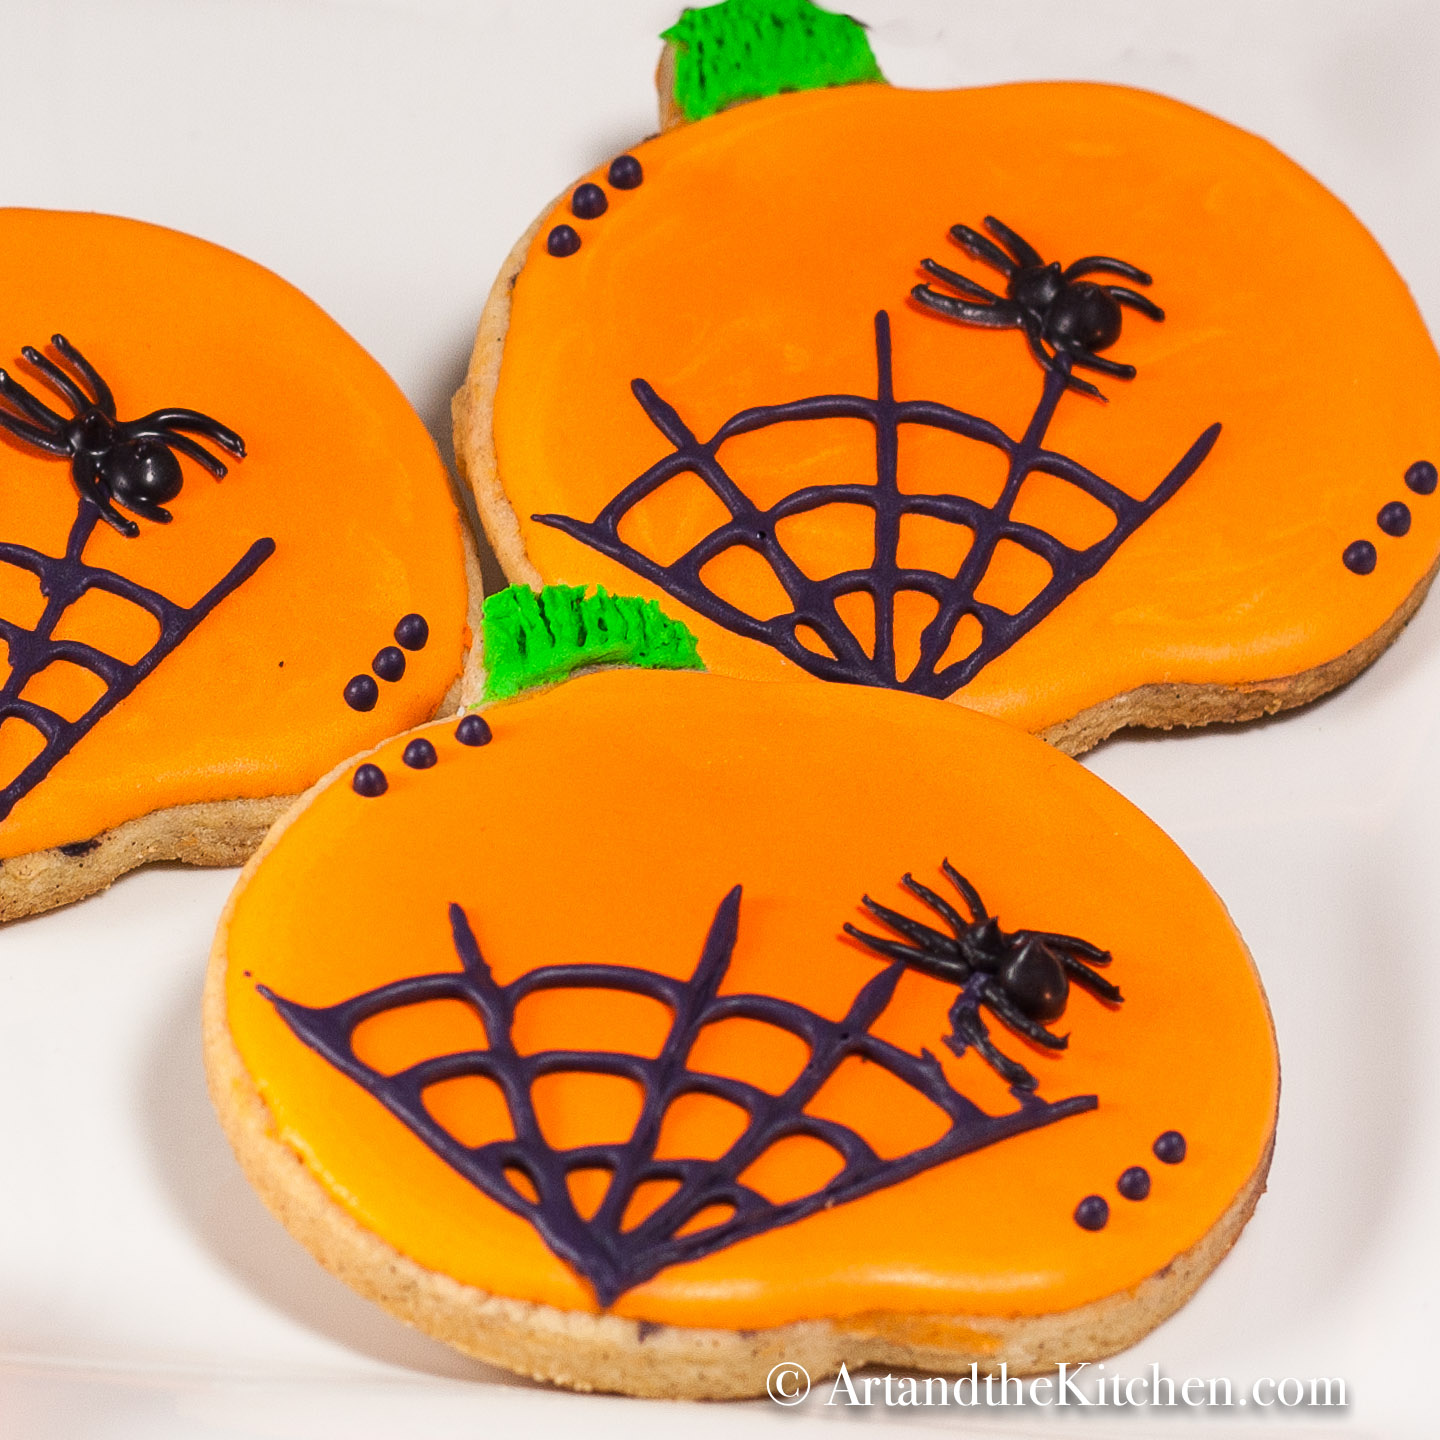 Three pumpkin shaped, orange frosted sugar cookies on a white plate. Decorated with black spider and web icing.